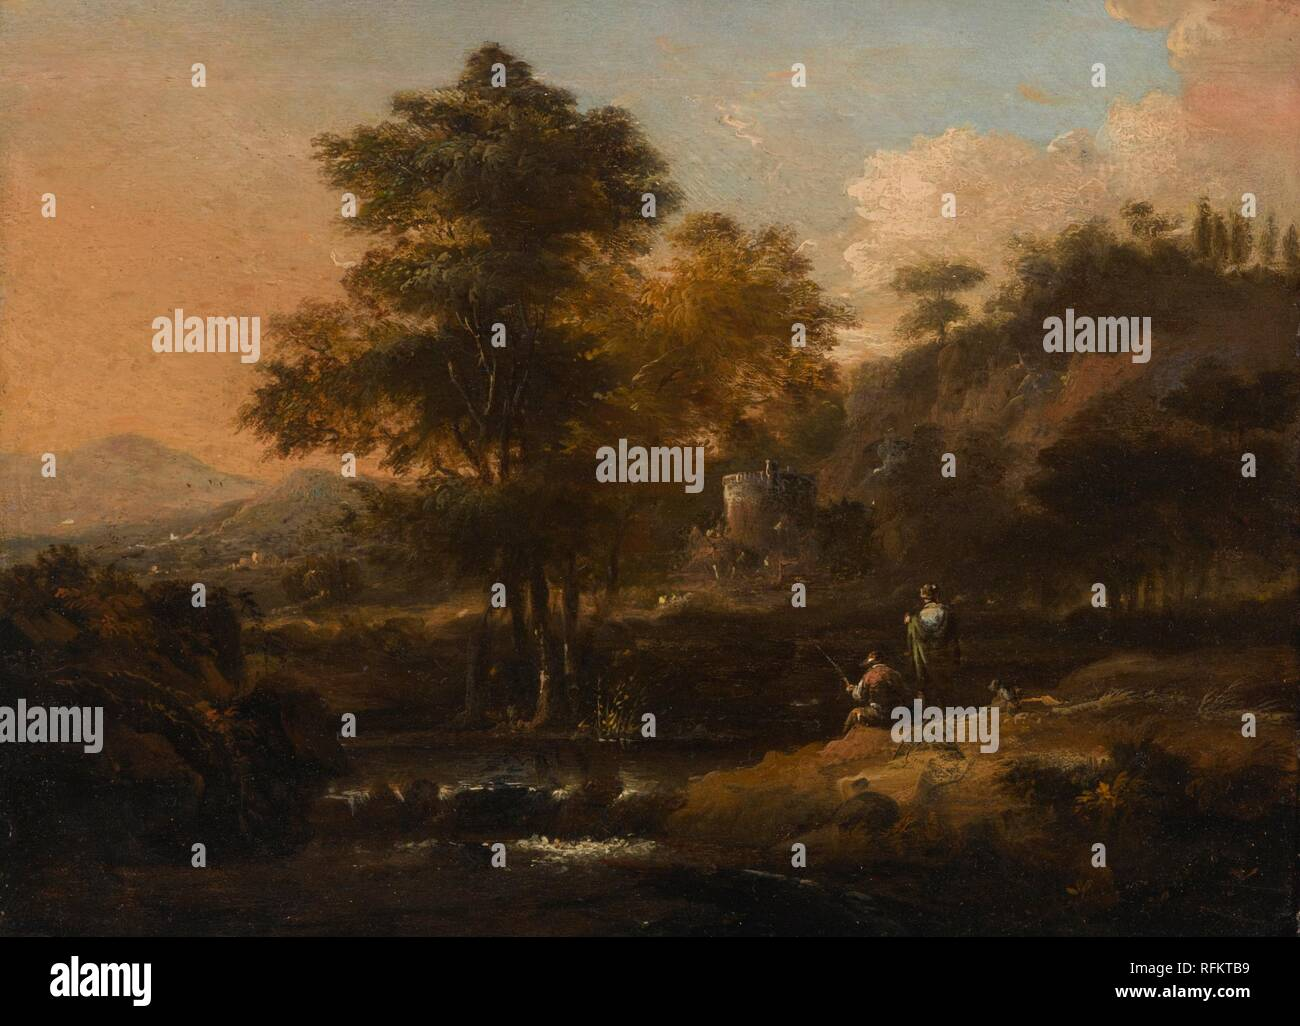 Dutch School, 18th Century A RIVER LANDSCAPE WITH FIGURES ON THE